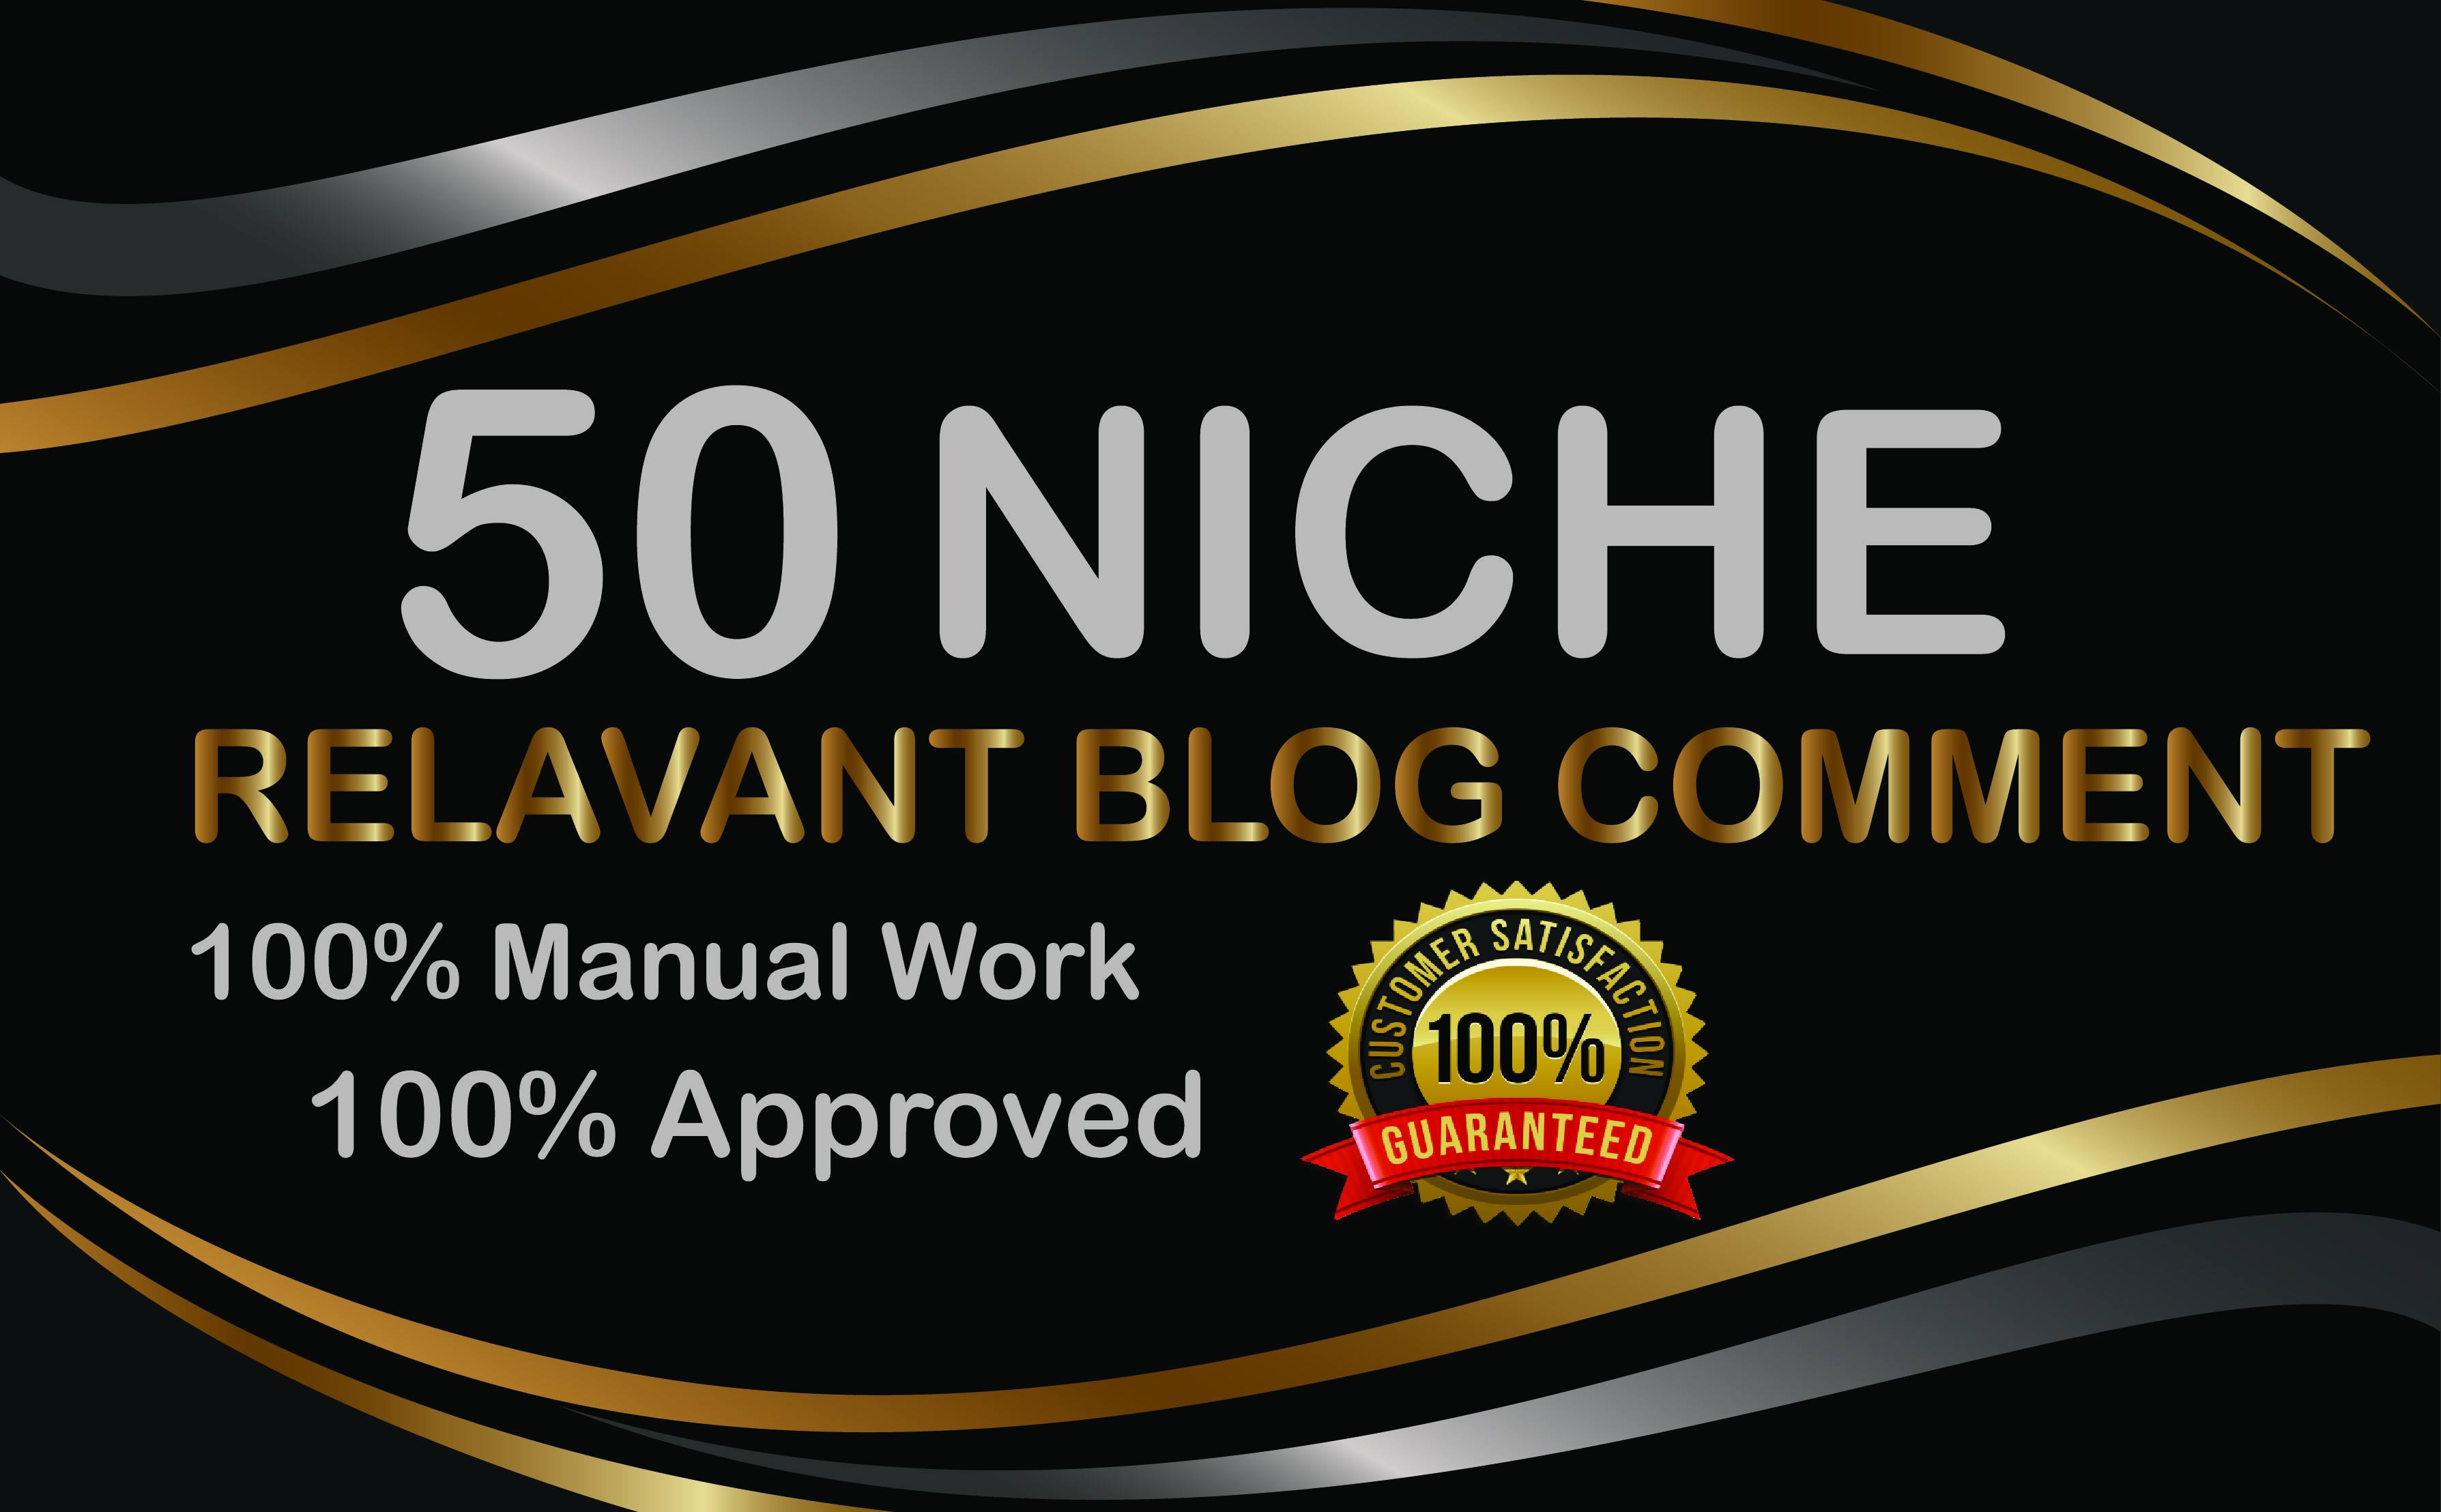 Manual Build 50 Niche Relavant Blog Comments High Authority Backlinks